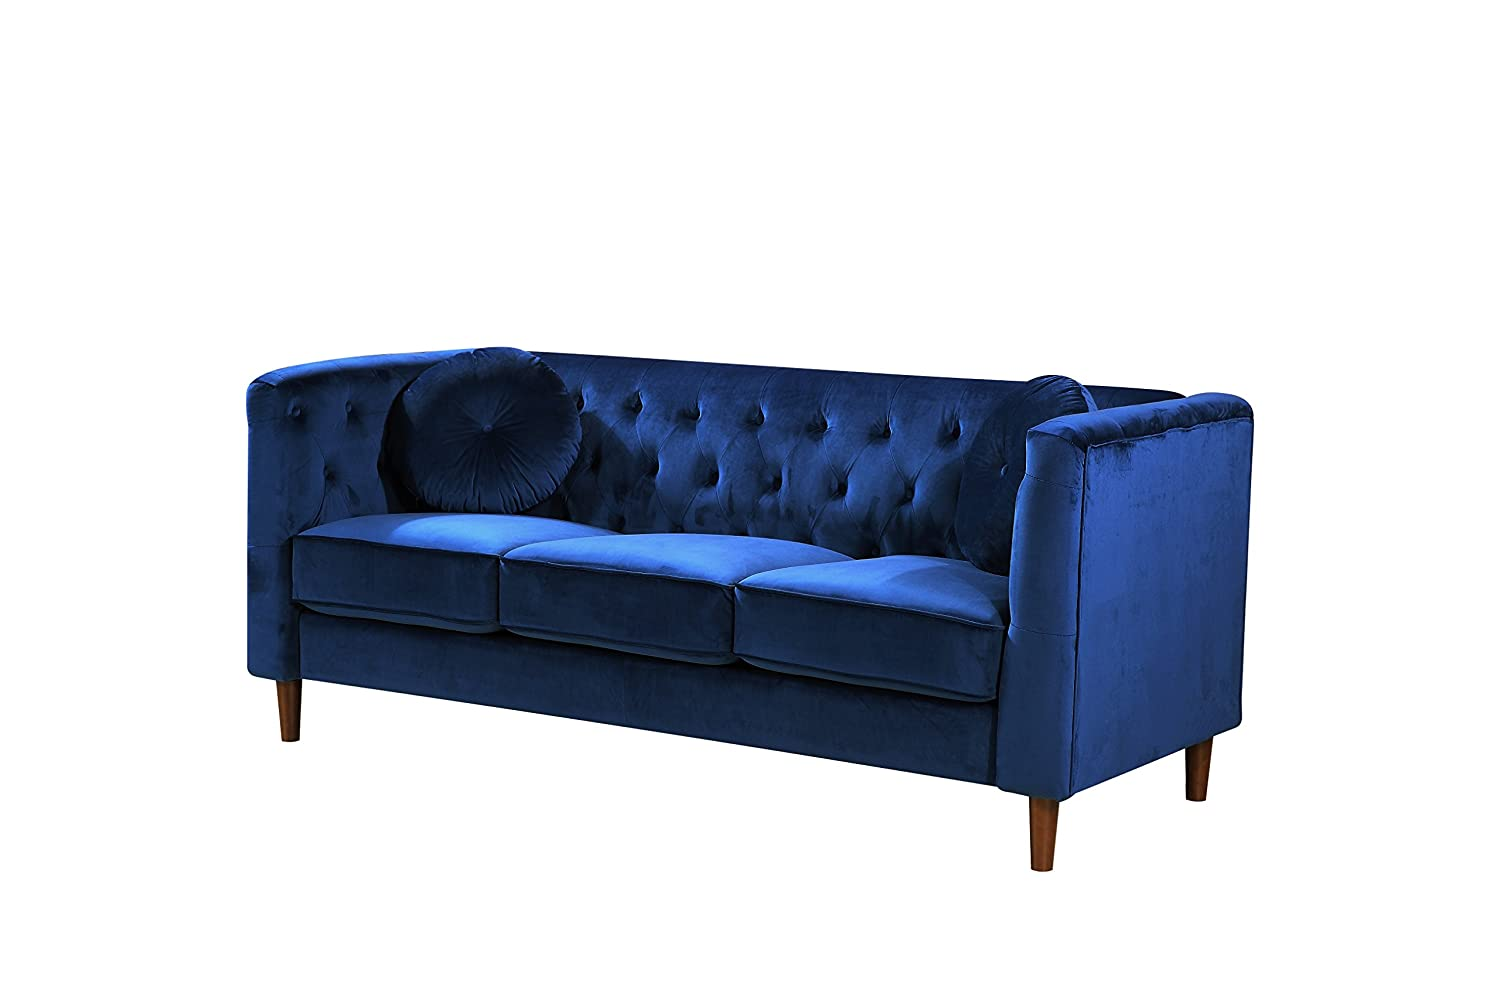 Container Furniture Direct S5373-S Kitts Velvet Upholstered Modern Chesterfield Sofa, 78